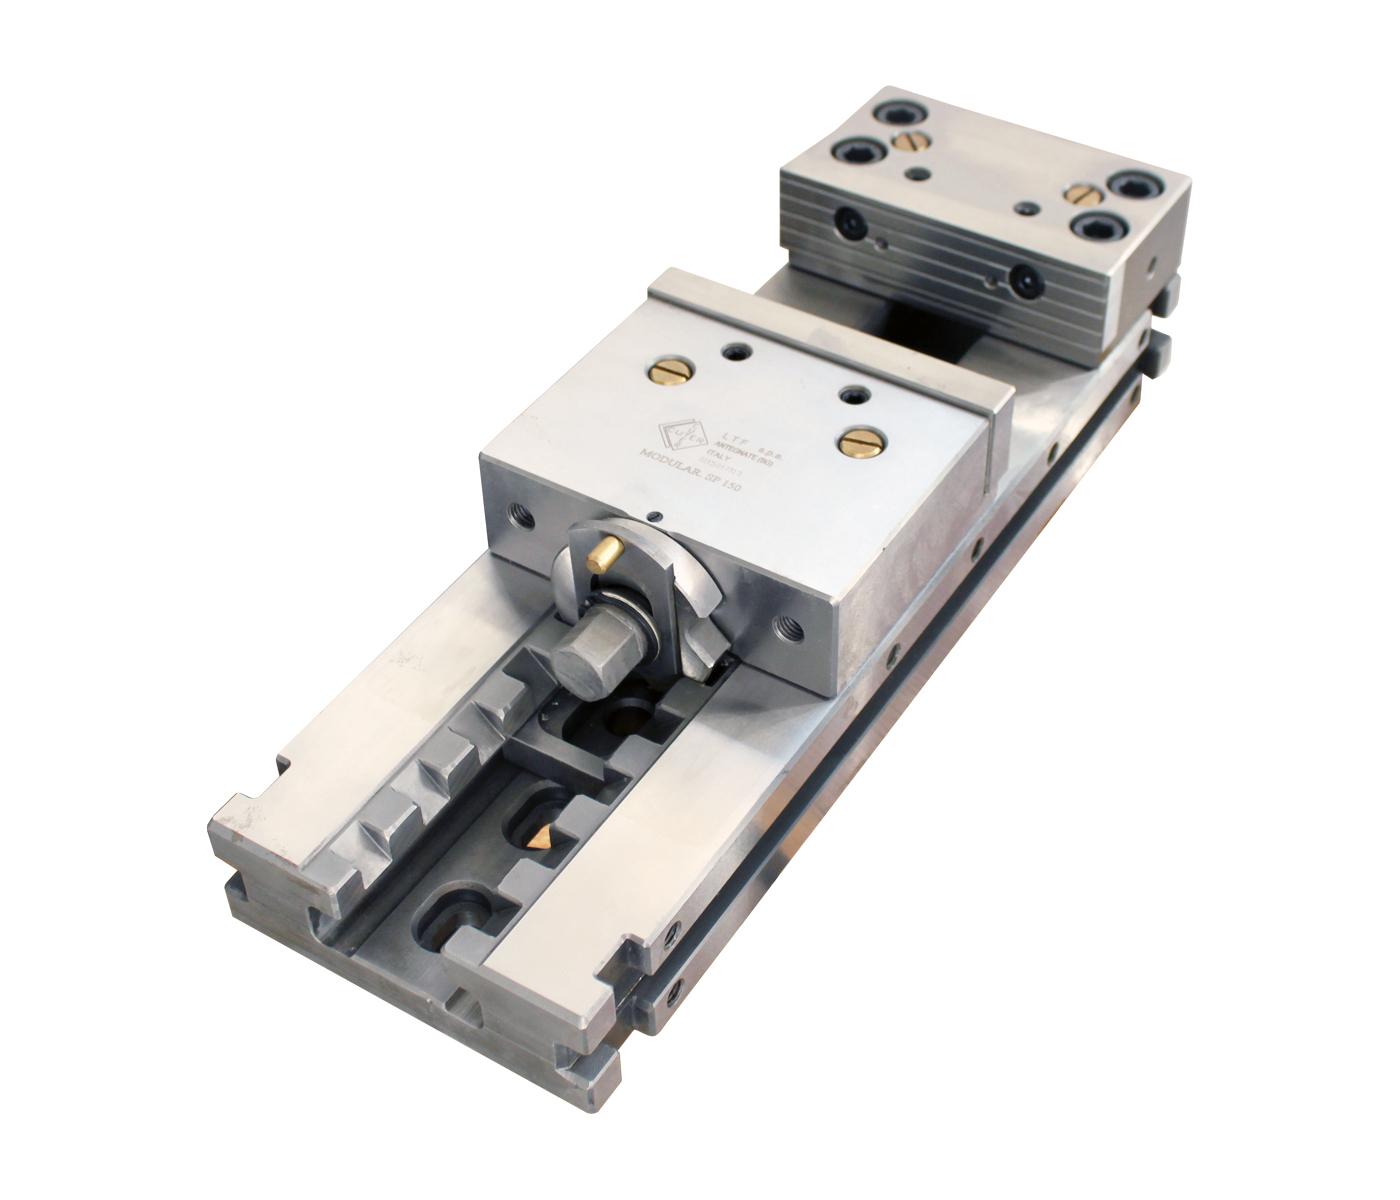 Modular vice with fixed jaws and quick-positioning hardened parallels